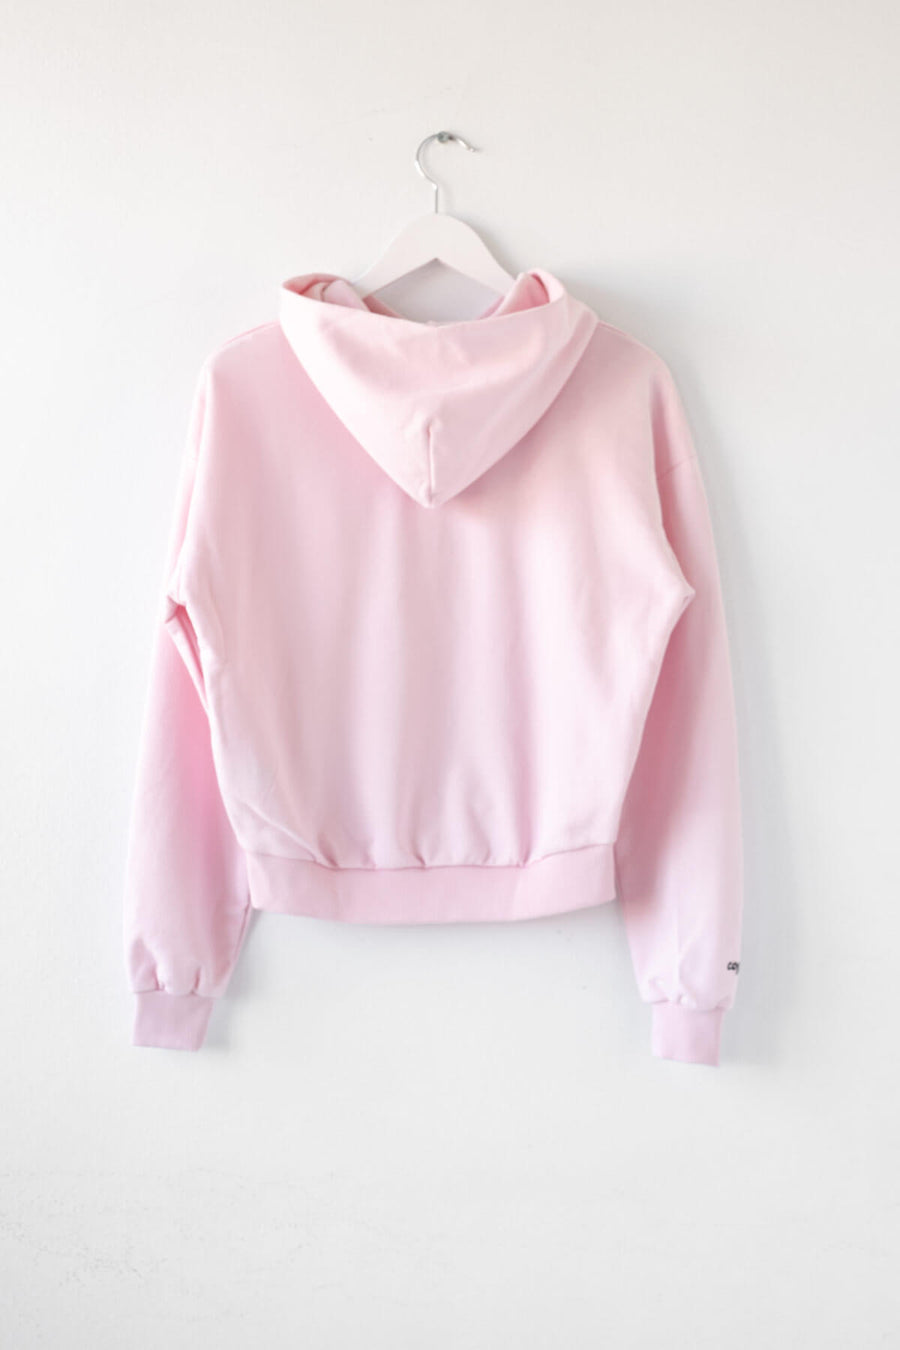 KÄT COPYKÄT cropped hoodie in light pink back